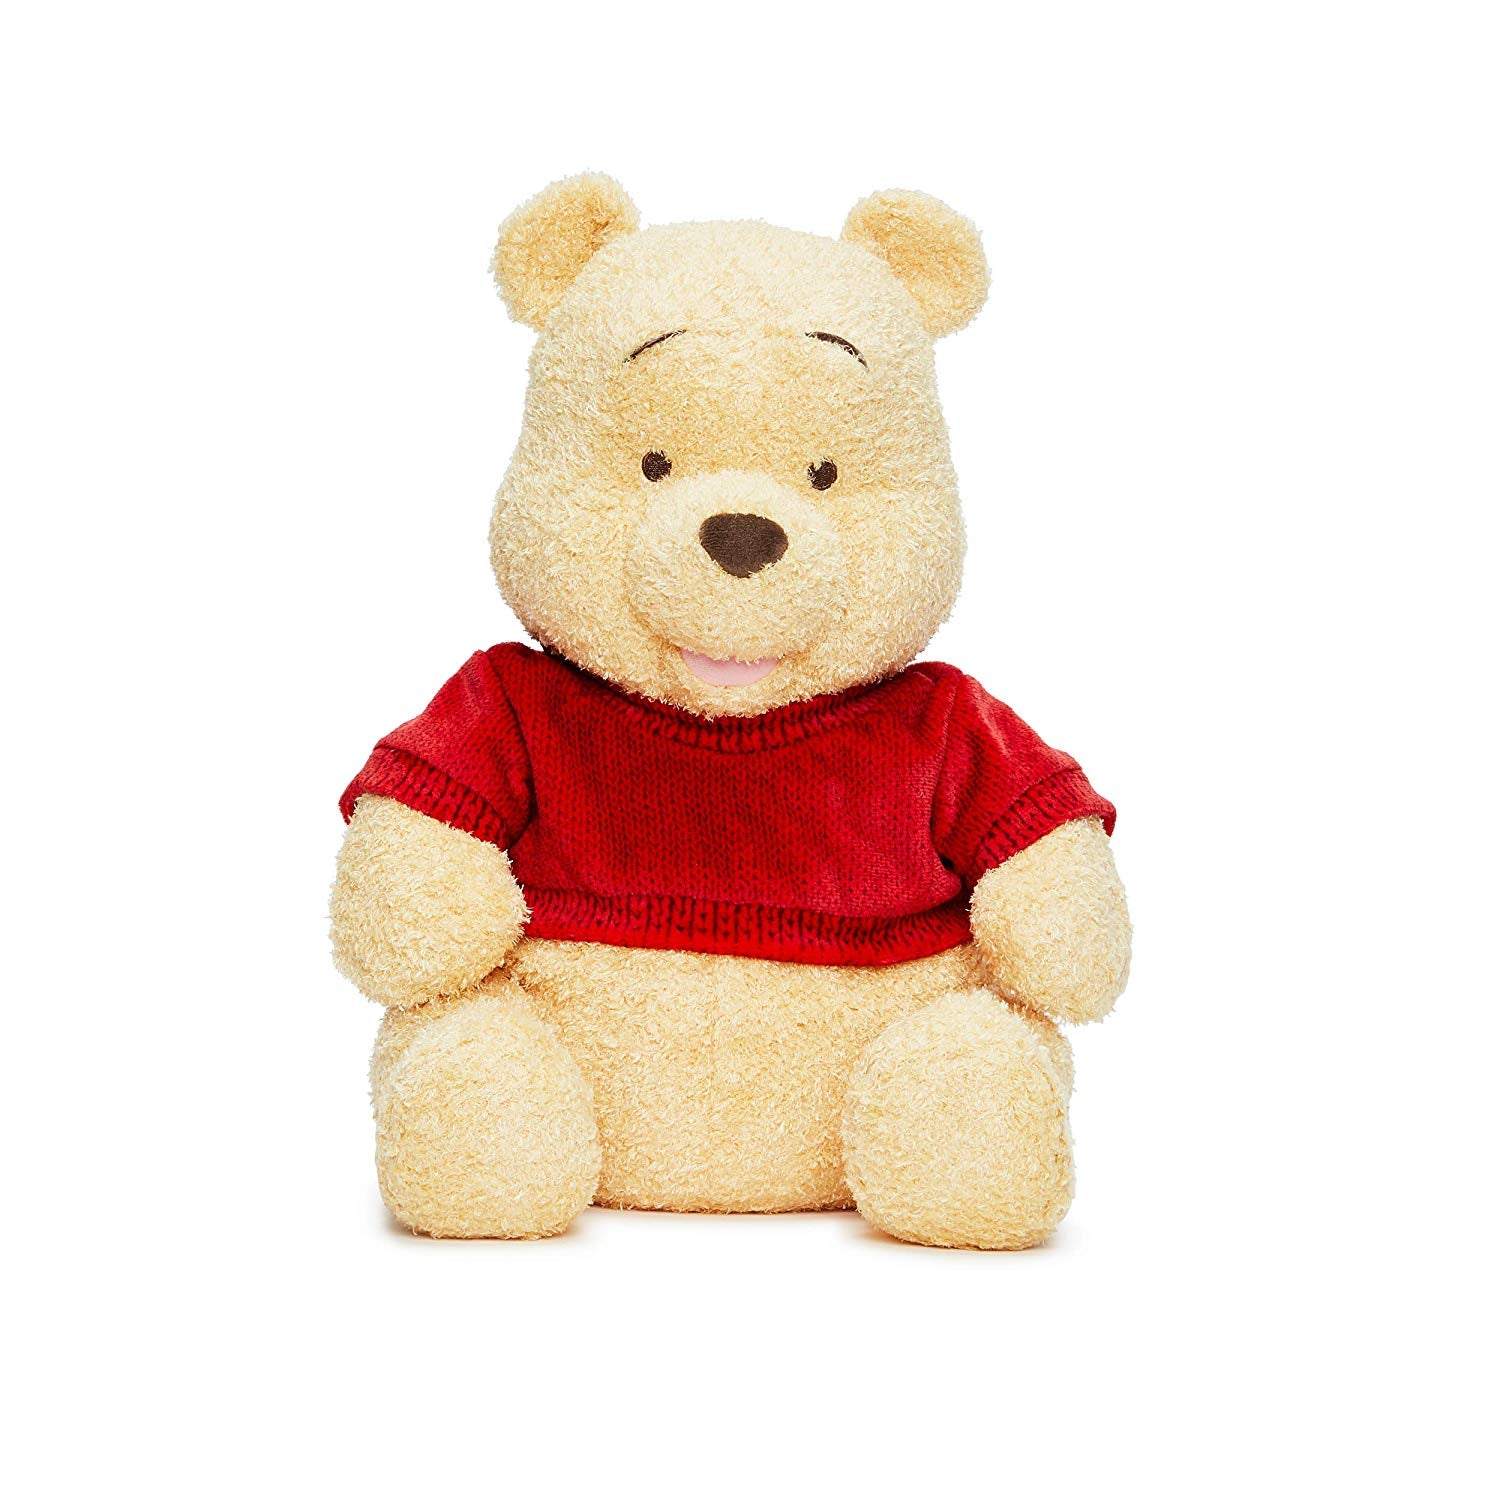 Posh Paws 37129 Disney My Teddy Bear Winnie The Pooh Soft Toy 50cm, Multi